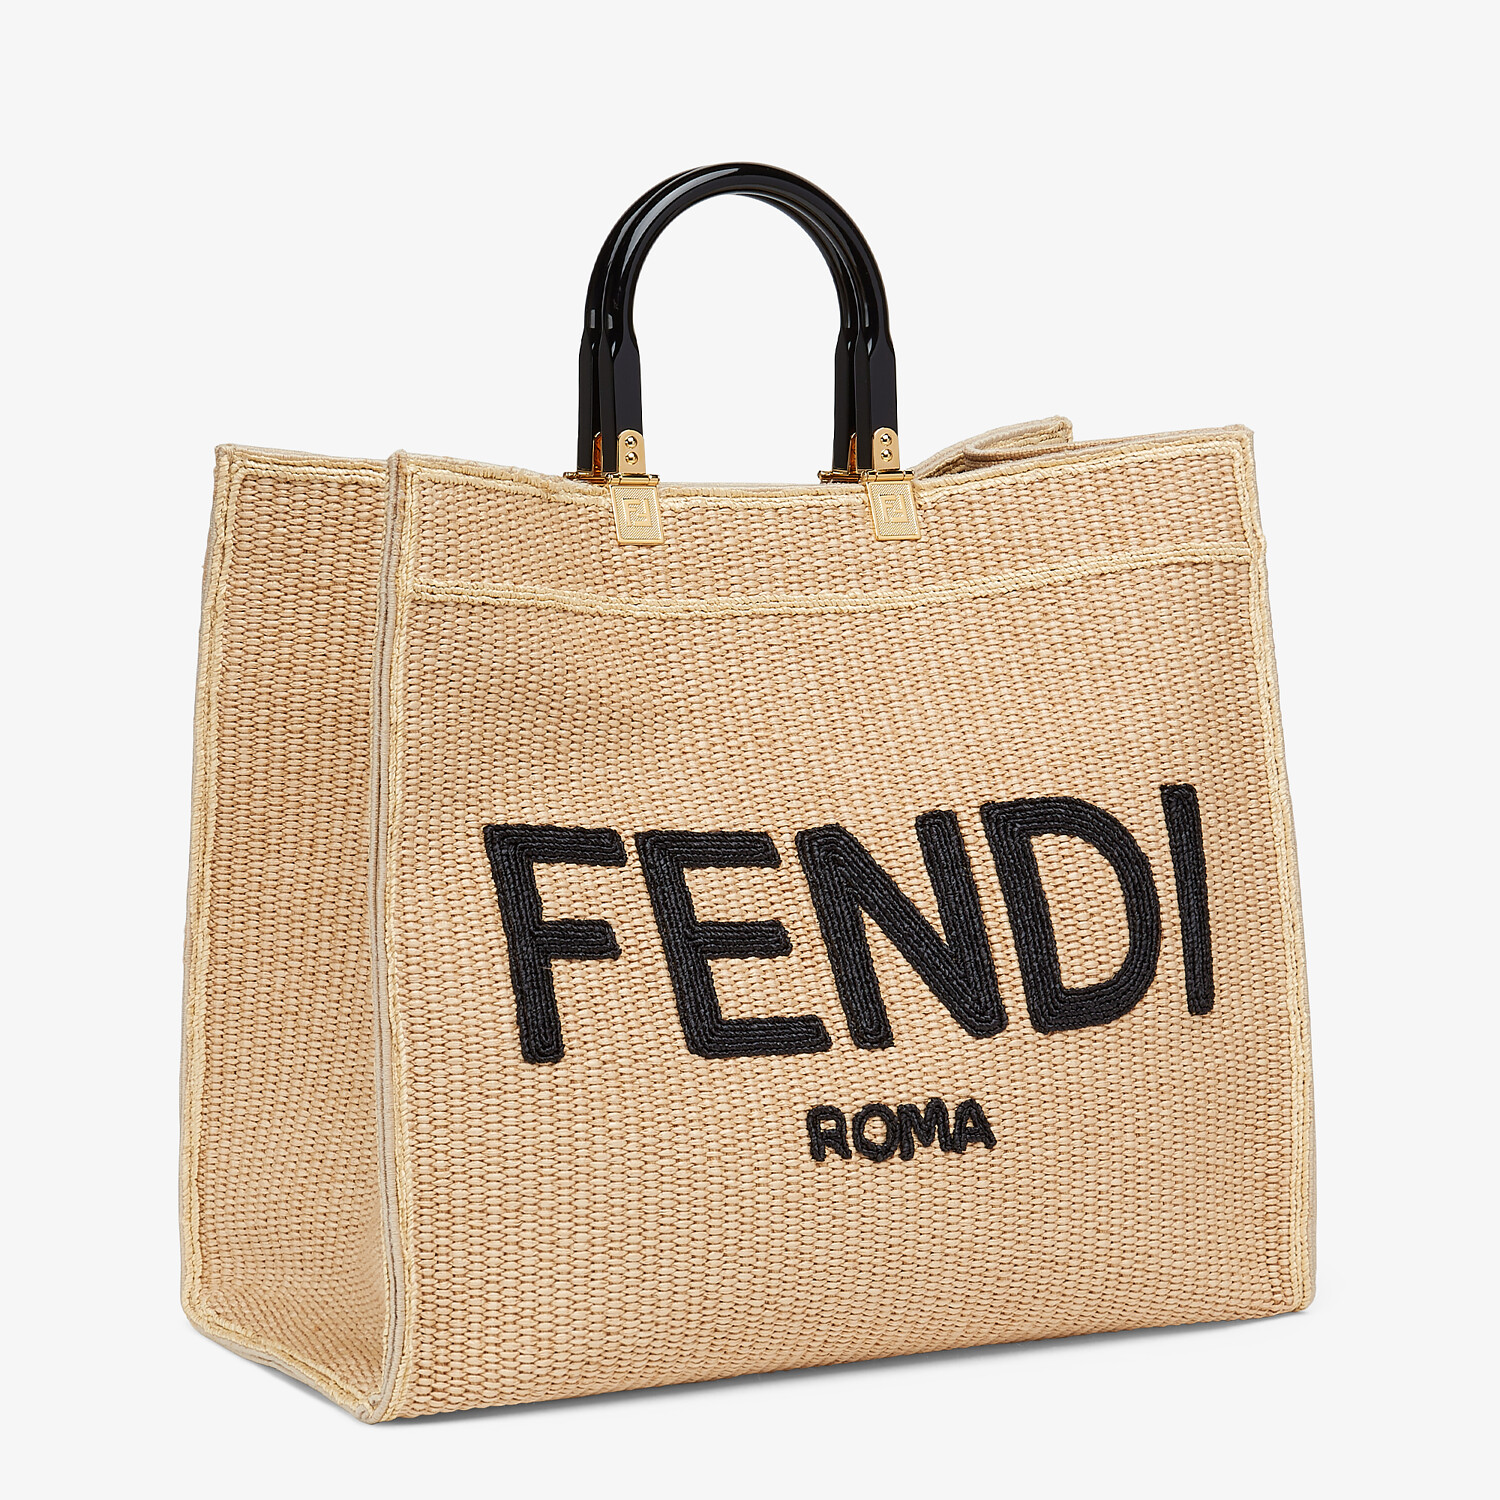 FENDI FENDI SUNSHINE LARGE - Woven straw shopper - view 3 detail